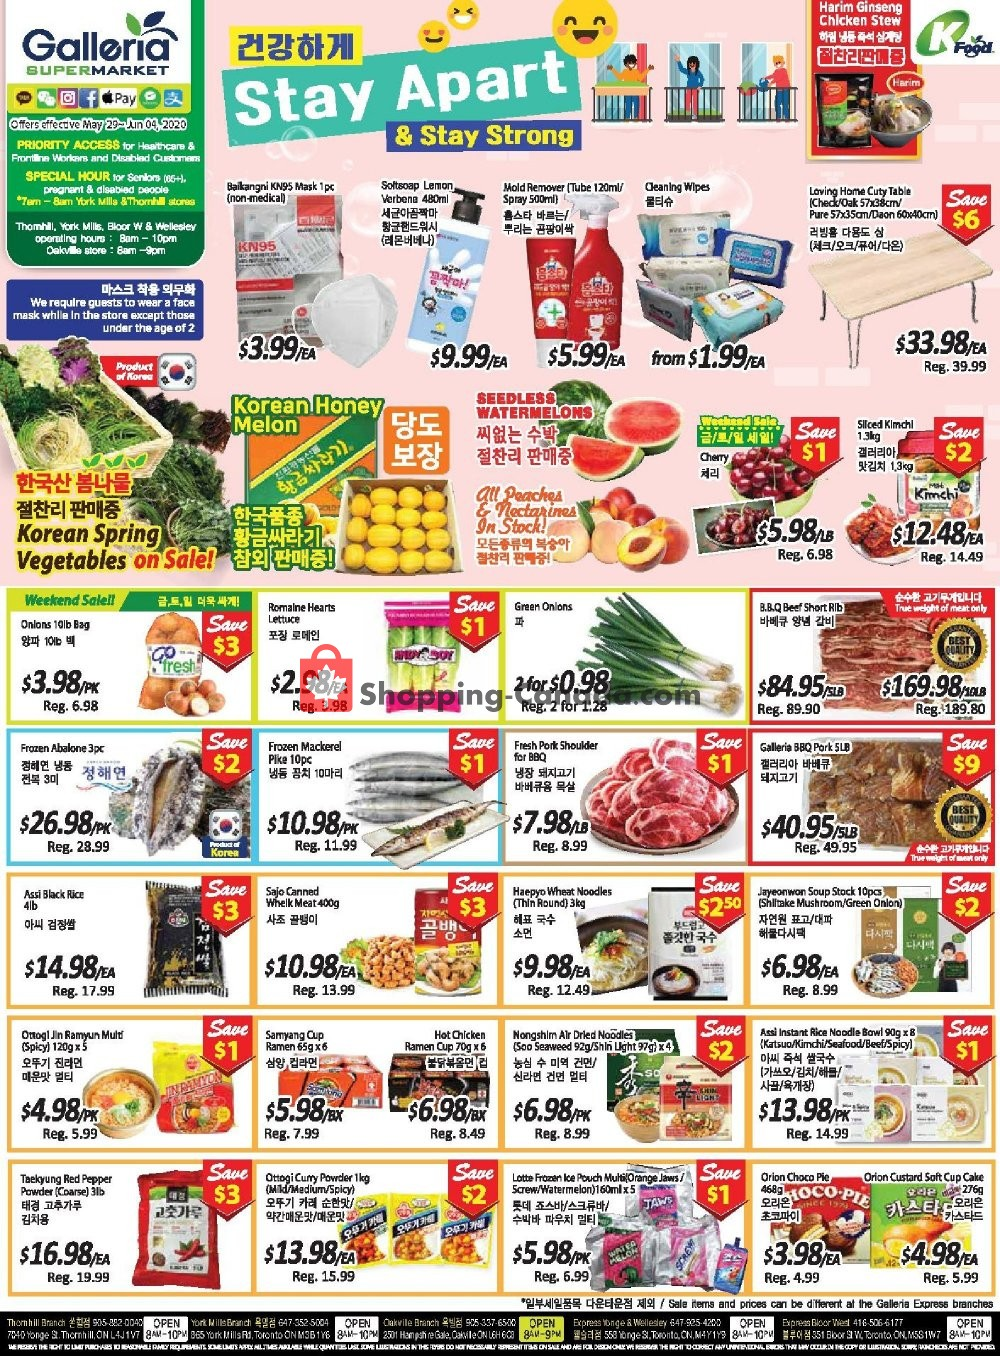 Flyer Galleria Supermarket Canada - from Friday May 29, 2020 to Thursday June 4, 2020